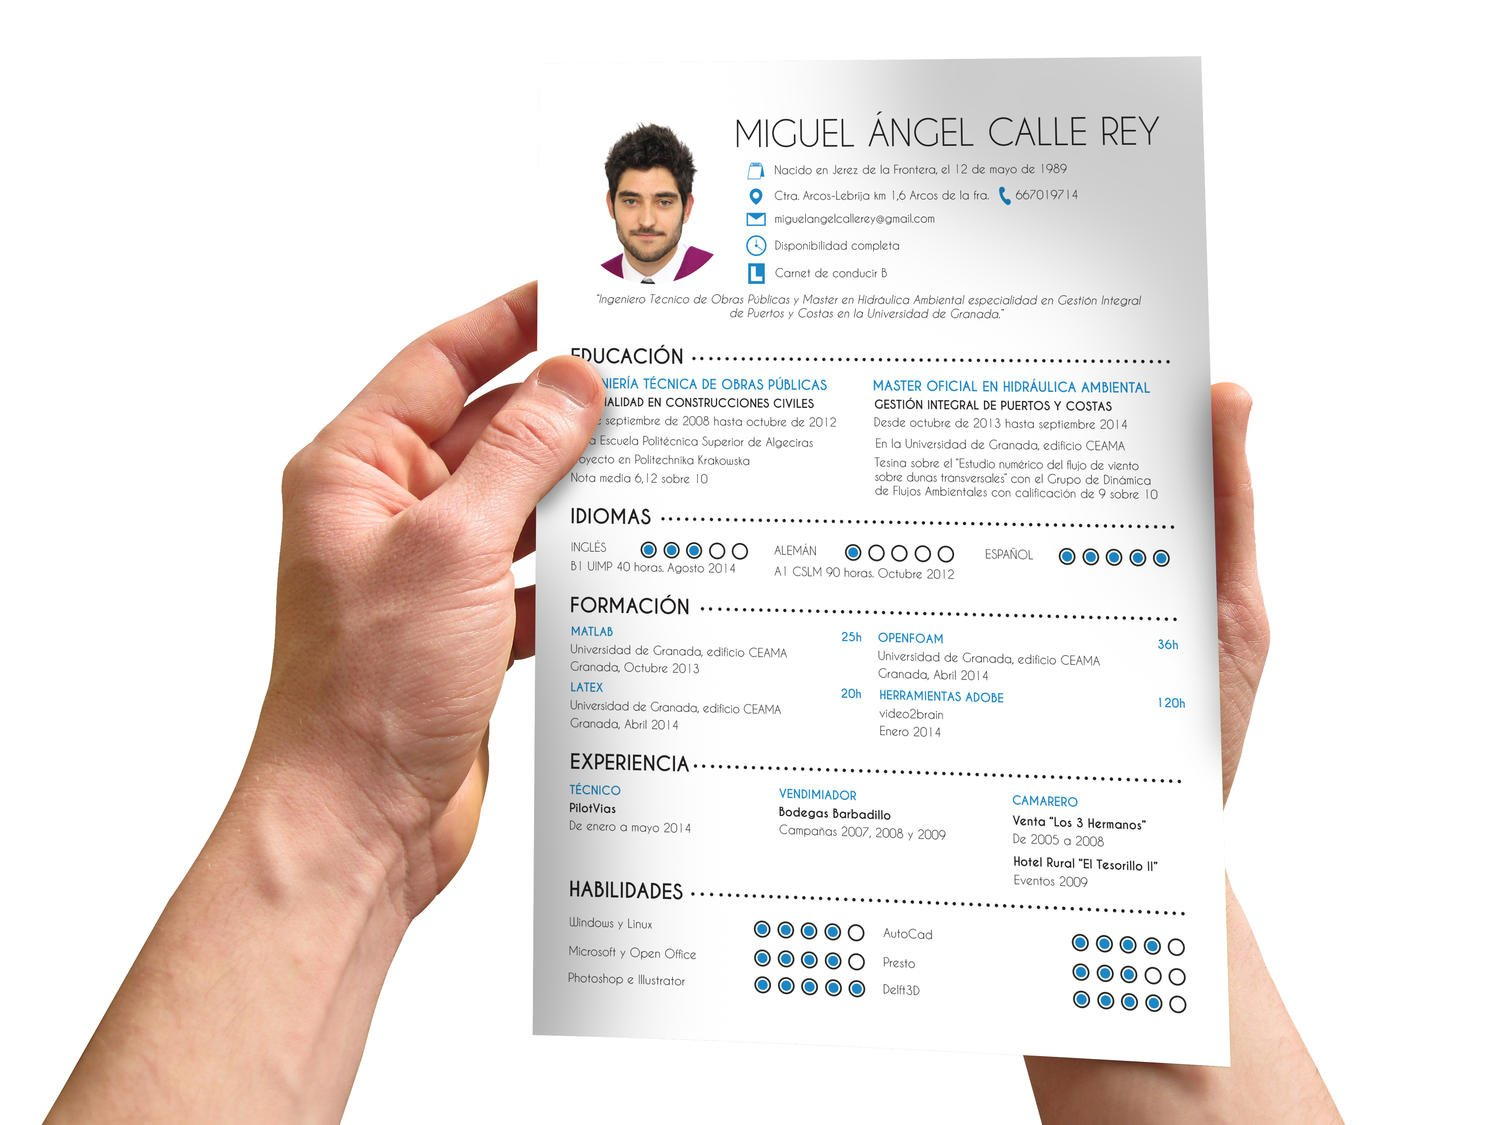 creative curriculum vitae    resume design by kizzton on